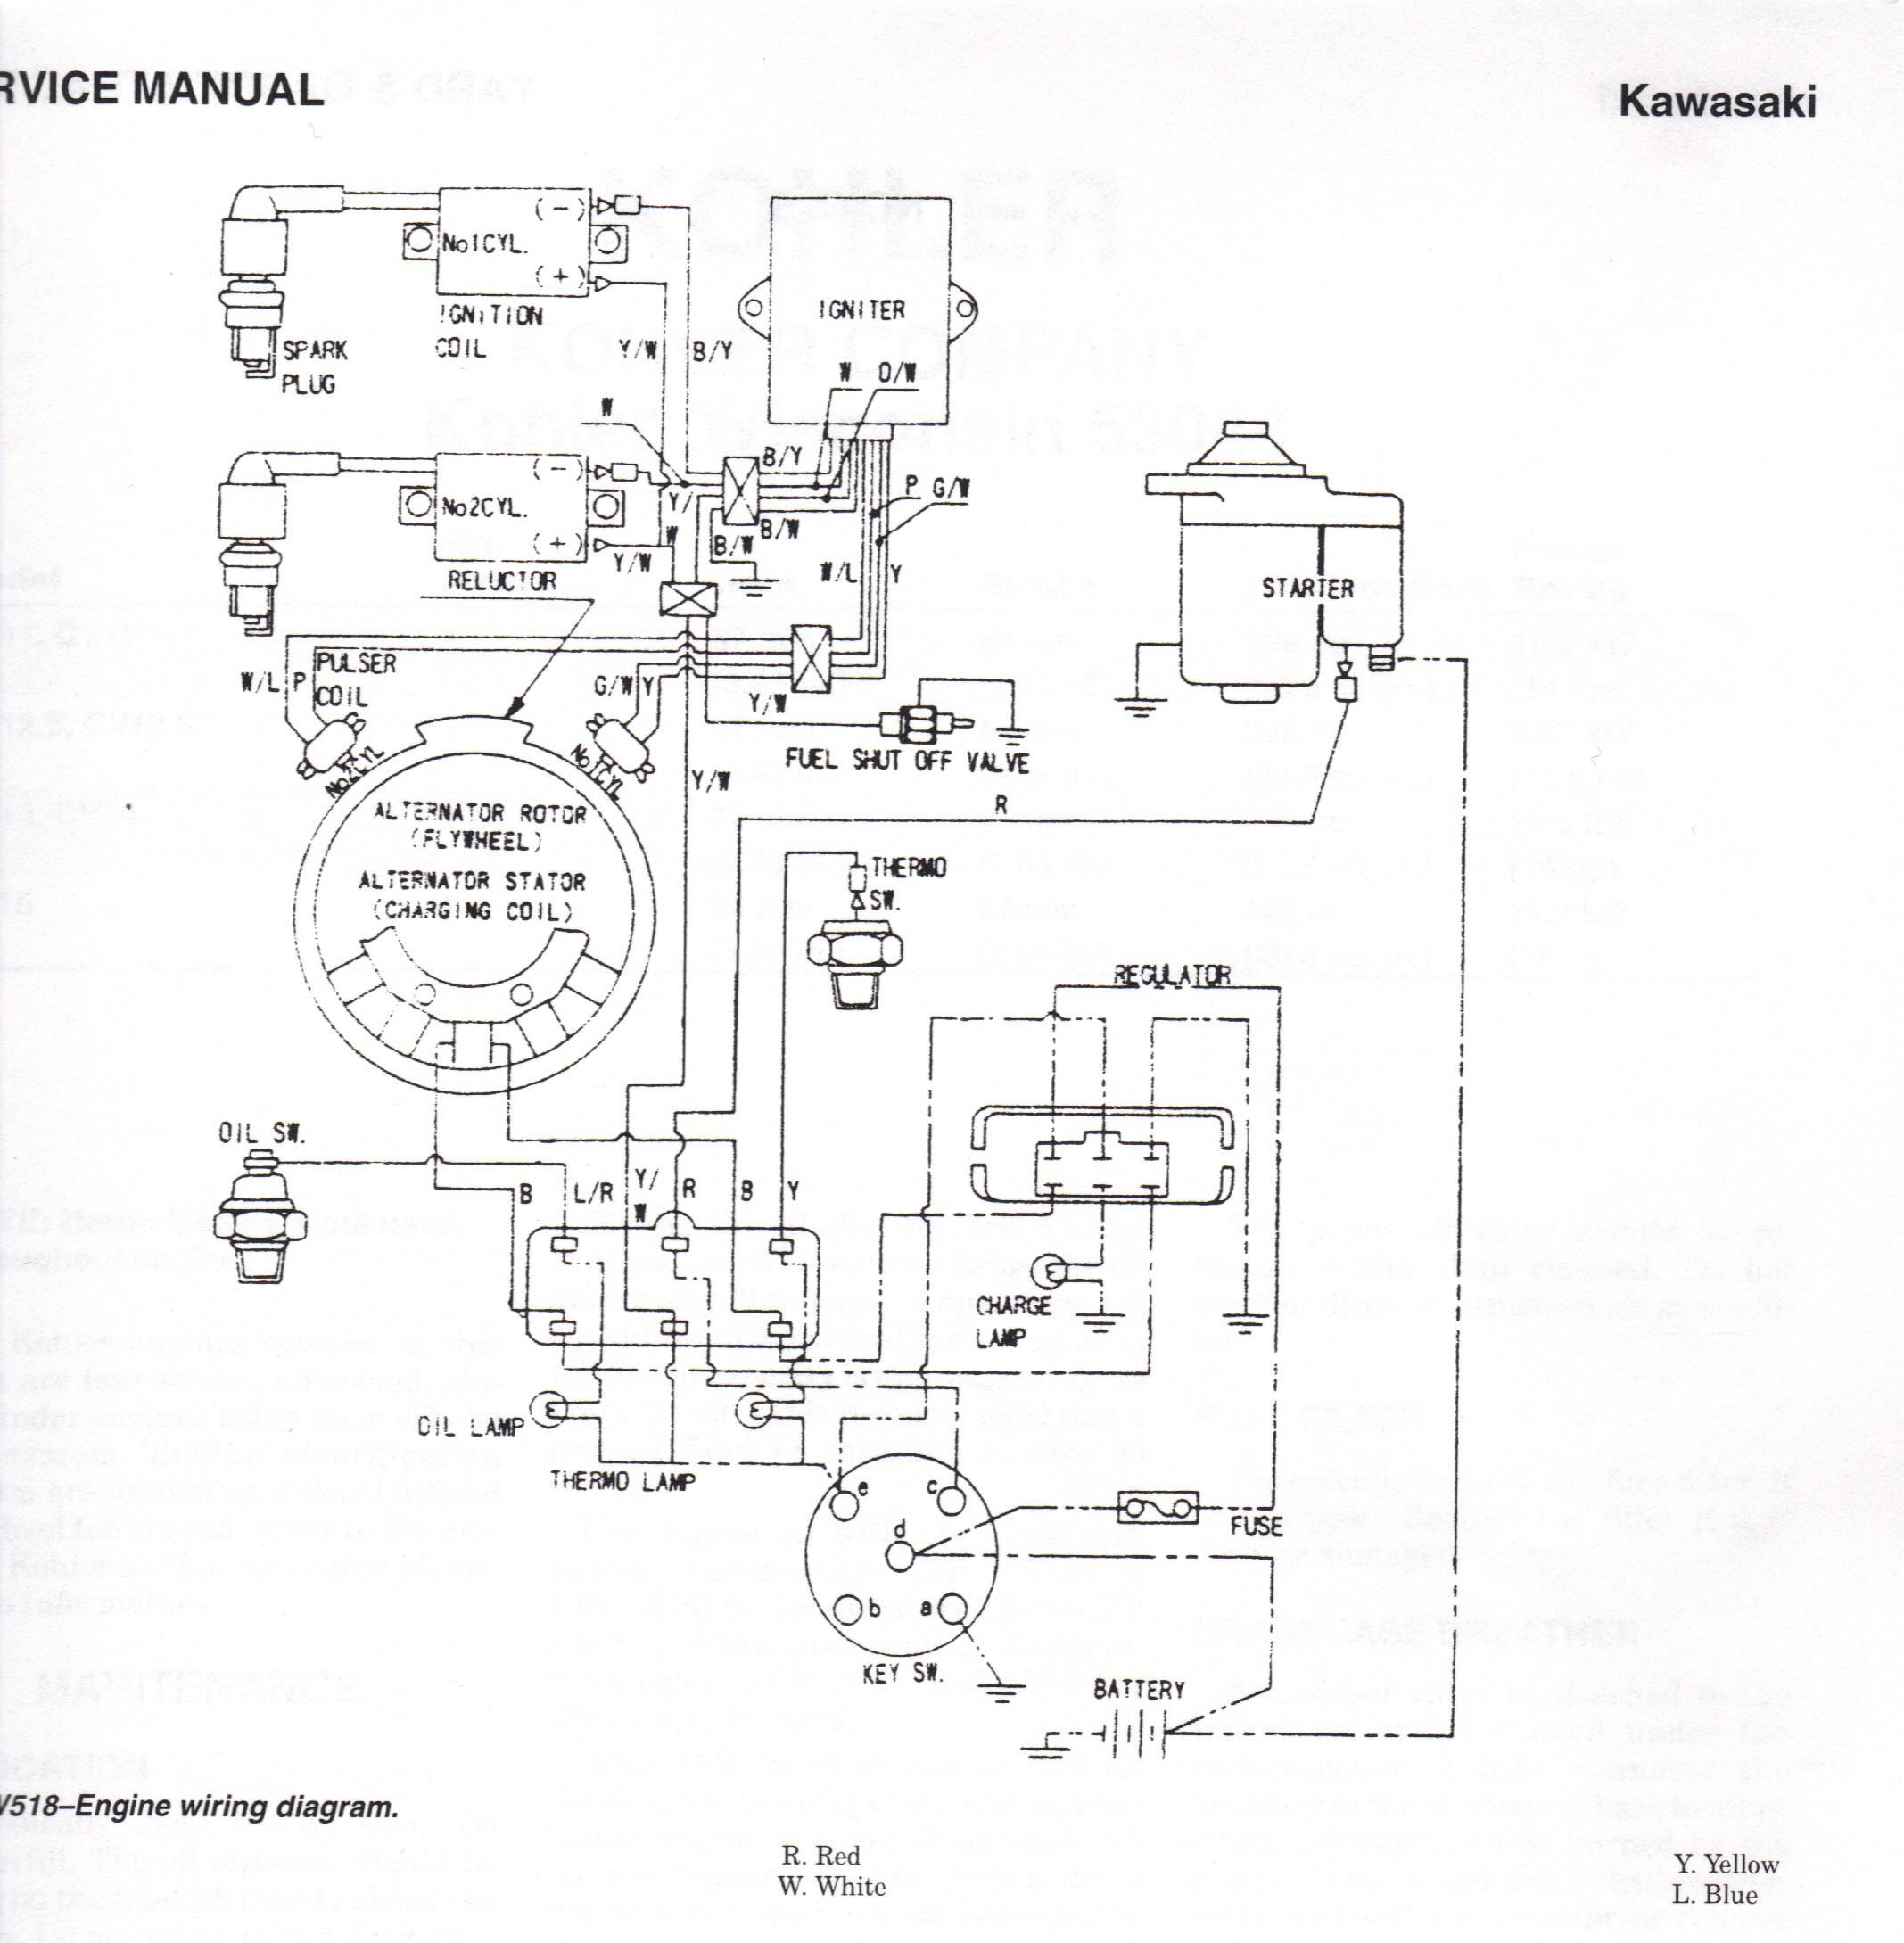 medium resolution of john deere 757 wiring diagram wiring diagram newwiring diagrams for 757 john deere 25 hp kawasaki